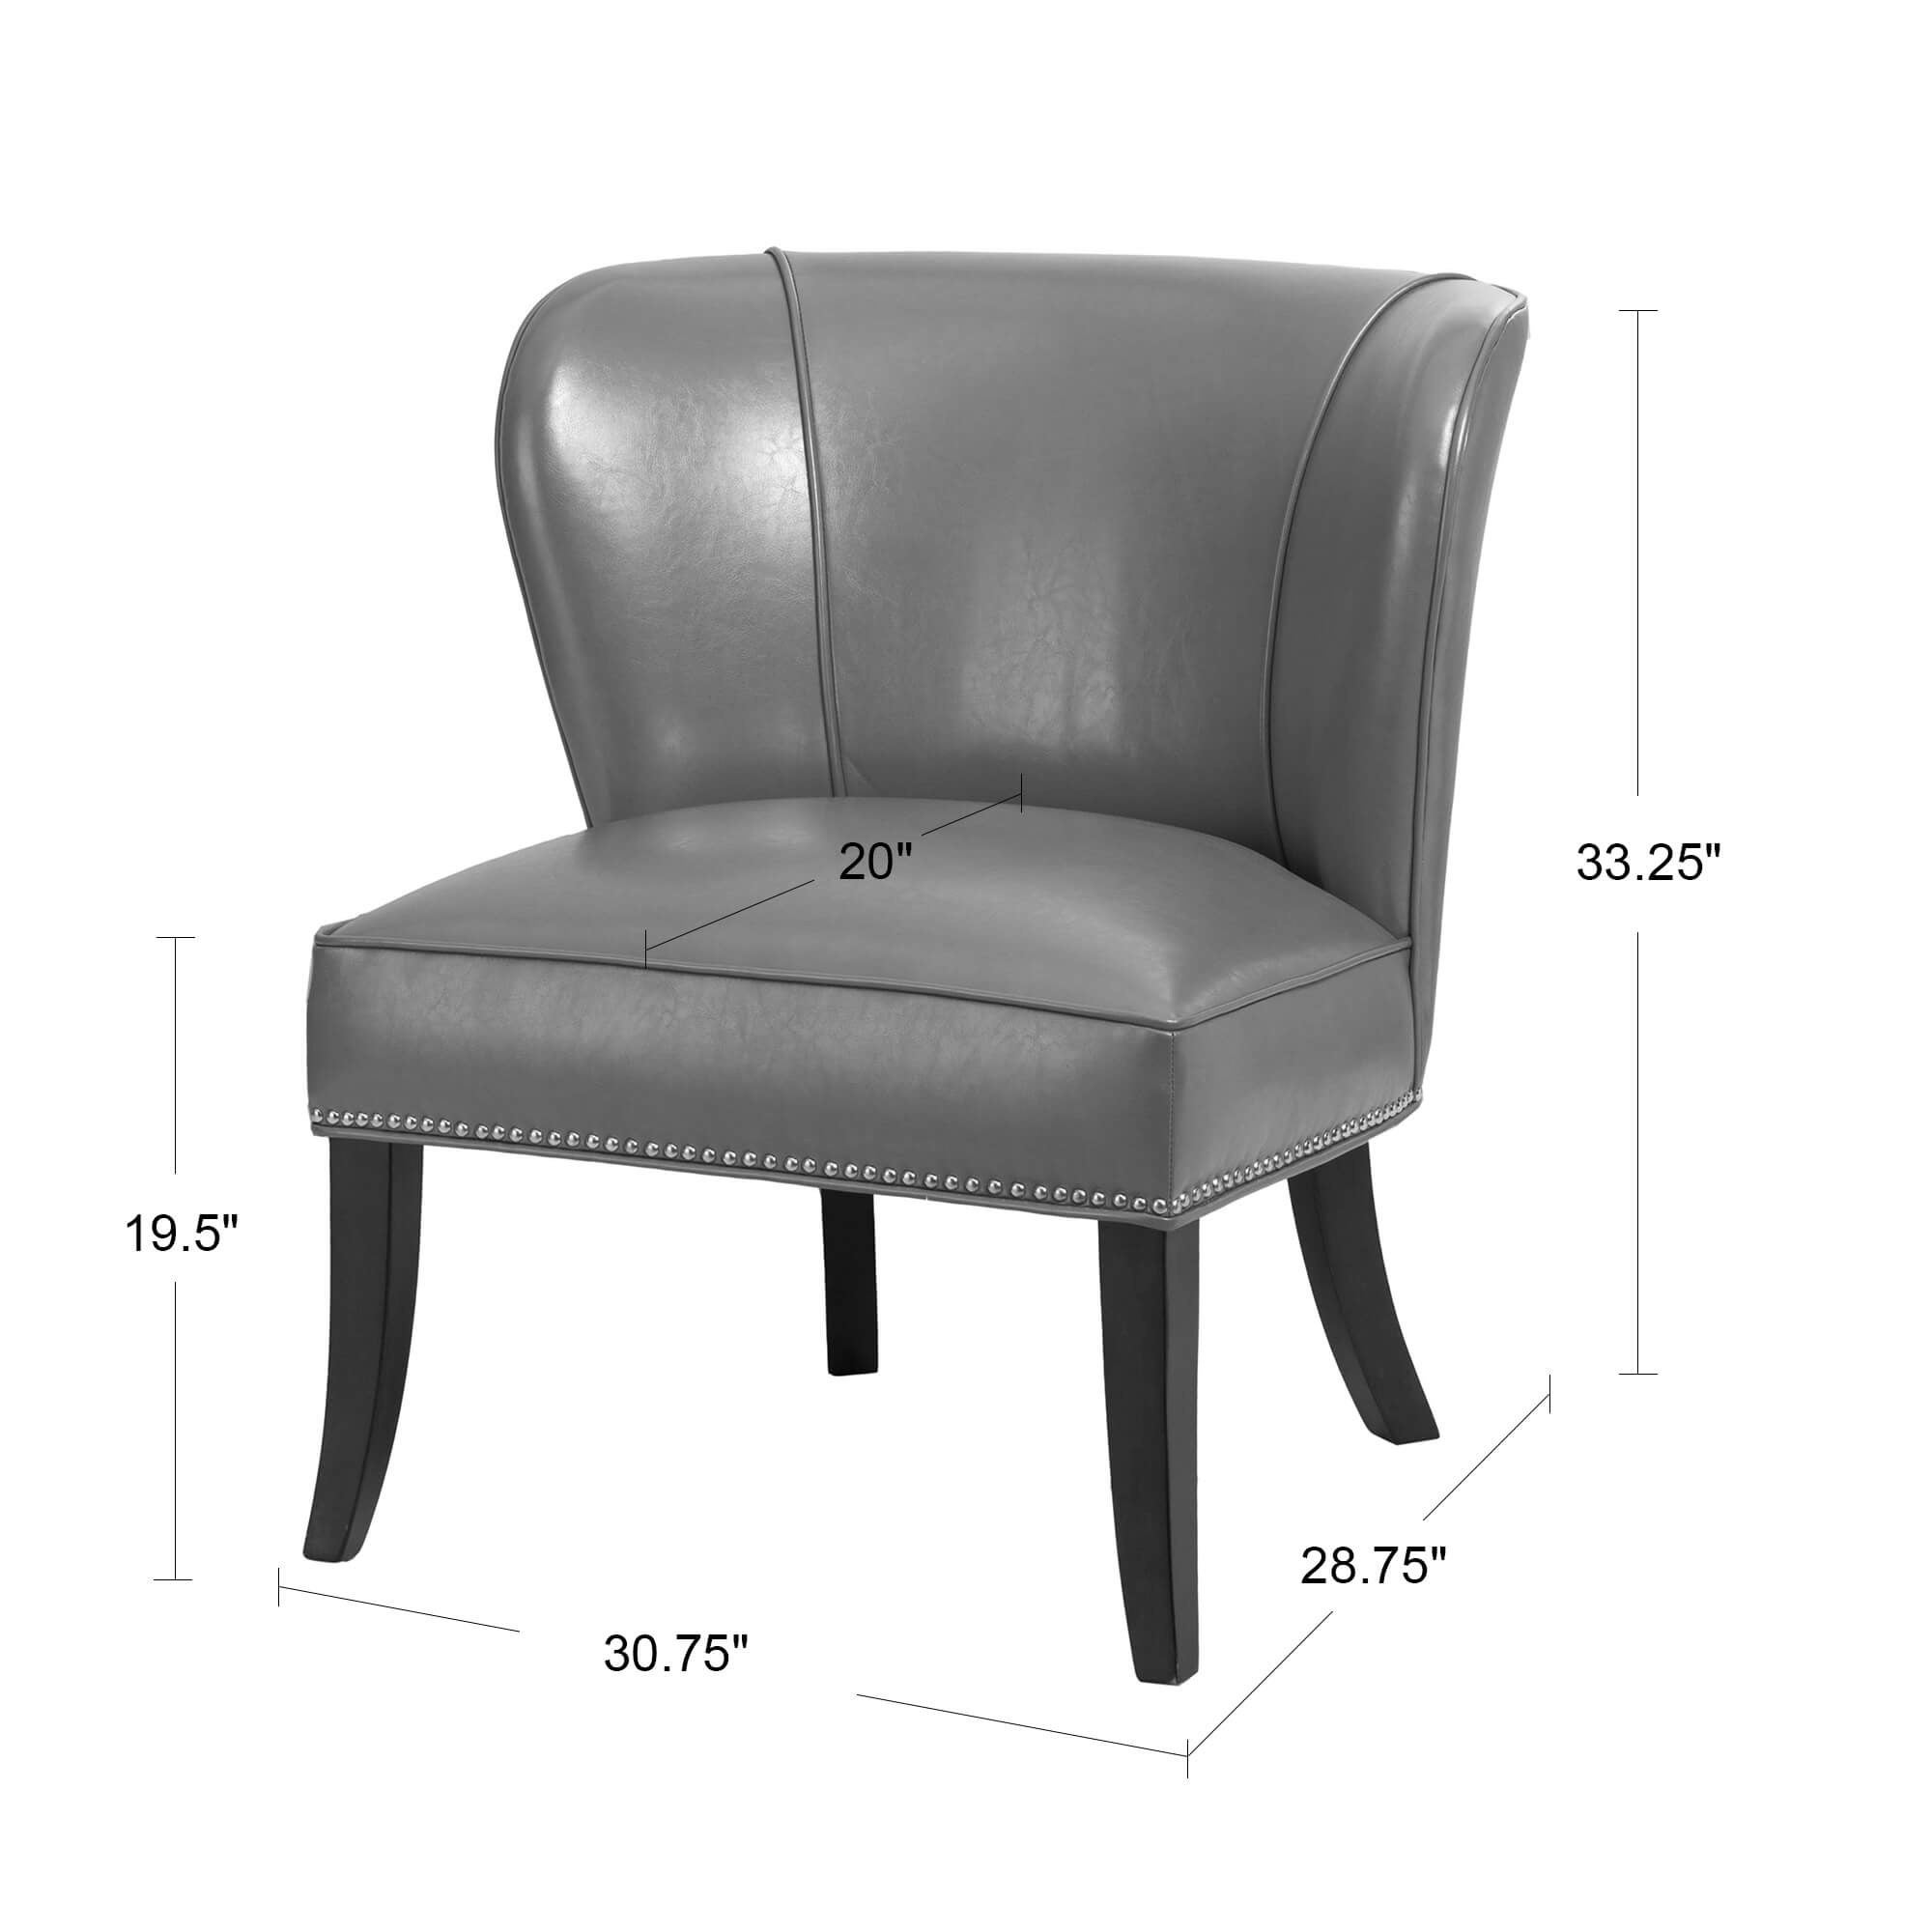 grey accent chair with arms. Madison Park Sheldon Concave Back Armless Grey Accent Chair - Free Shipping Today Overstock 17879871 With Arms